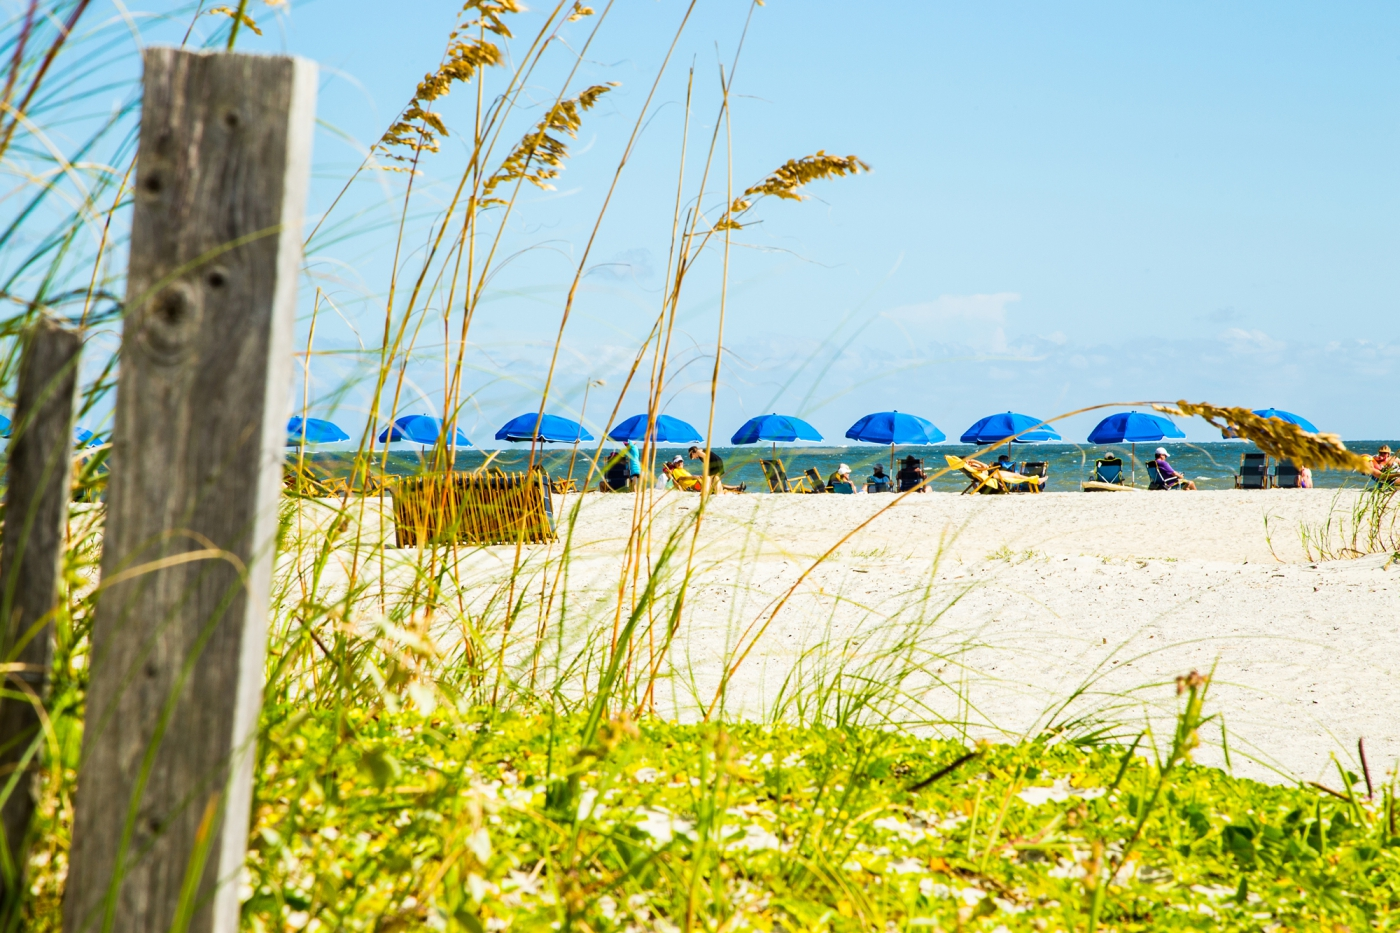 Enjoy the sun, sand and saltwater breeze on any one of South Carolina's beautiful beaches.